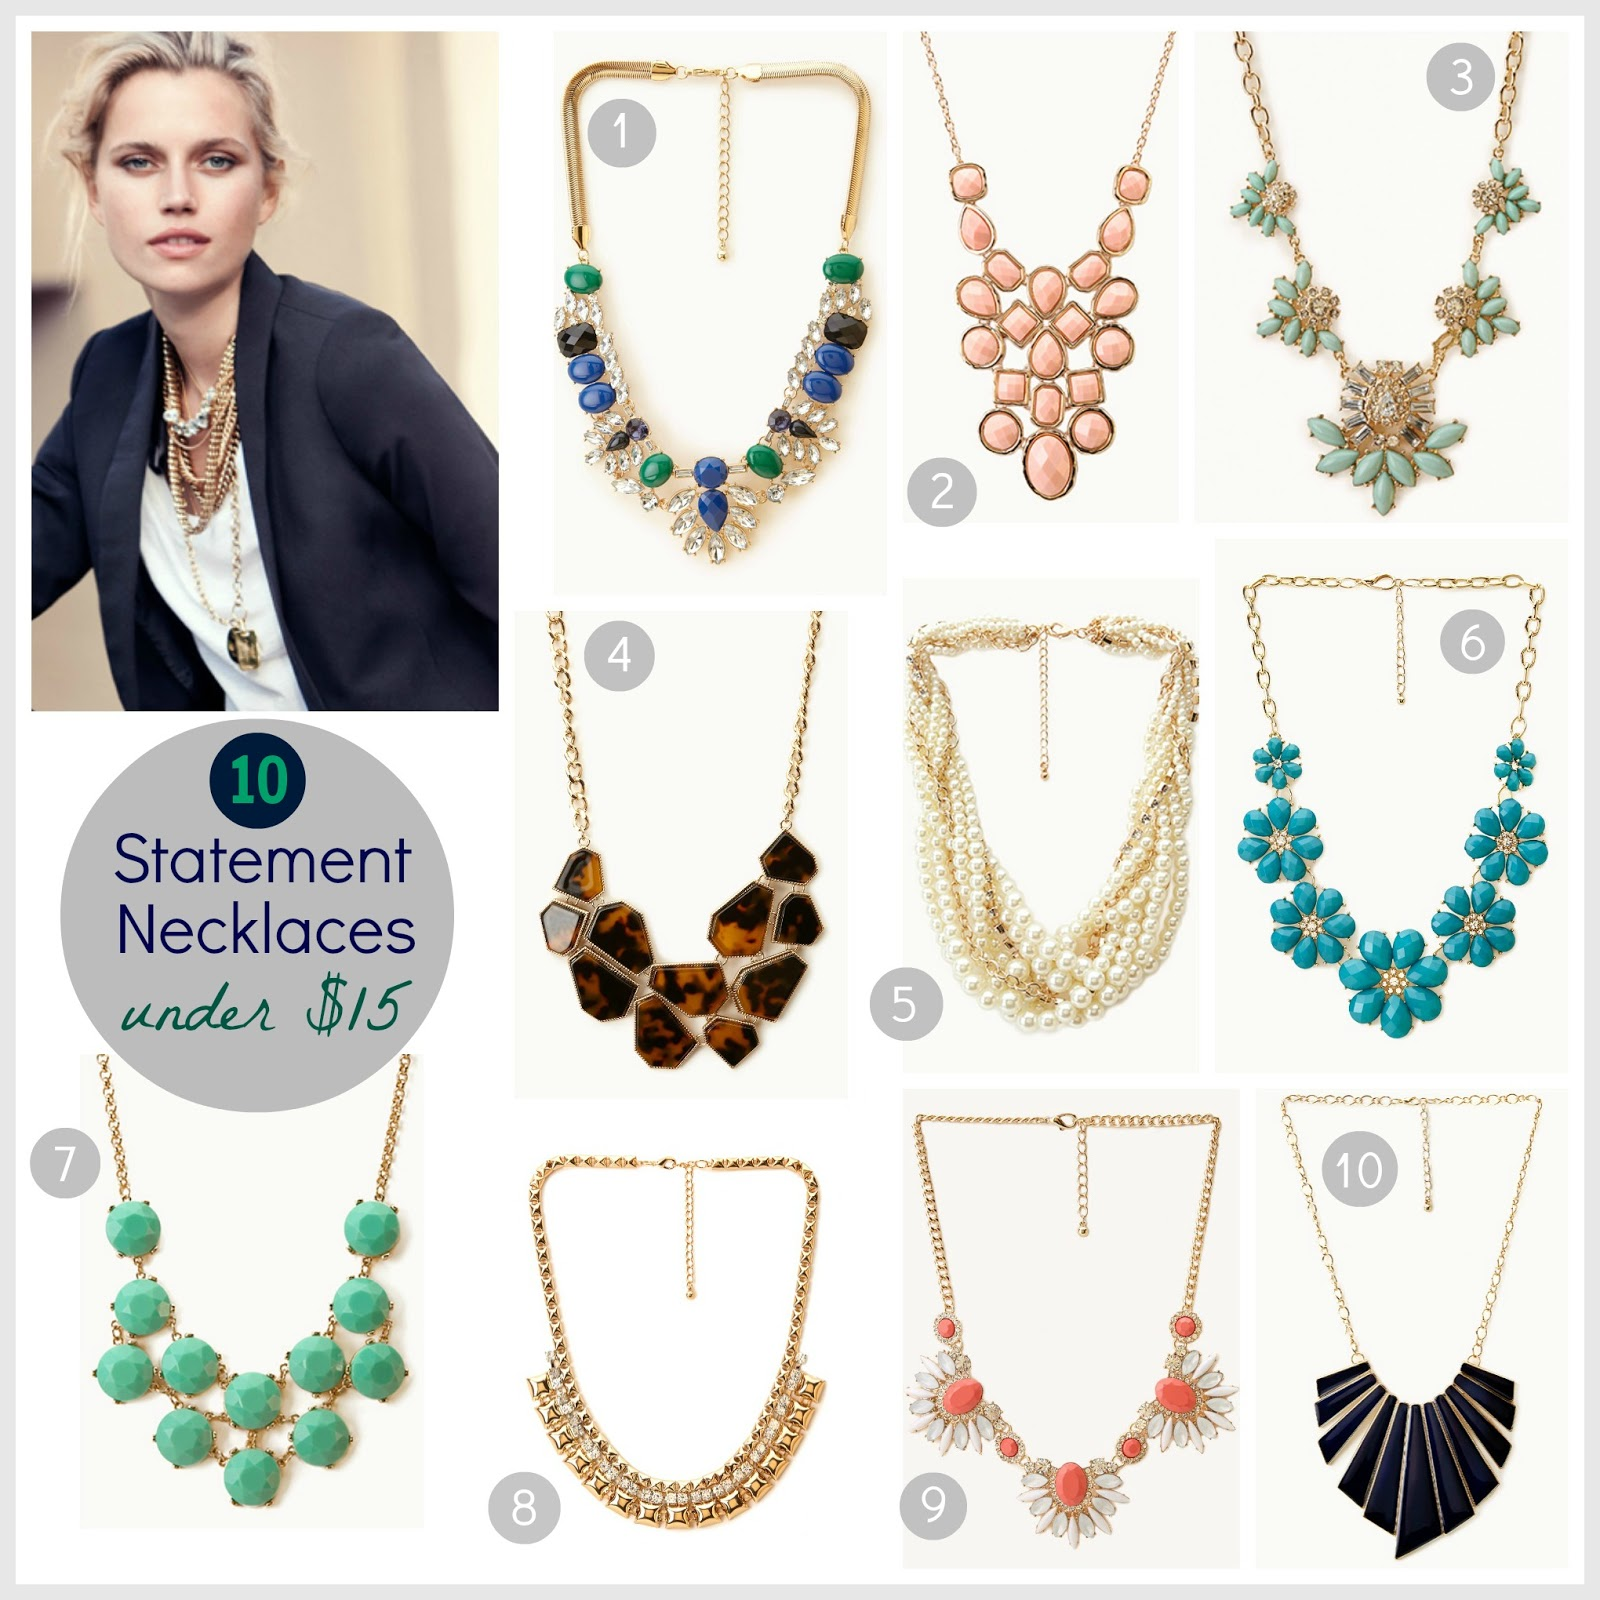 Tracy's Notebook of Style: 10 Statement Necklaces for ...